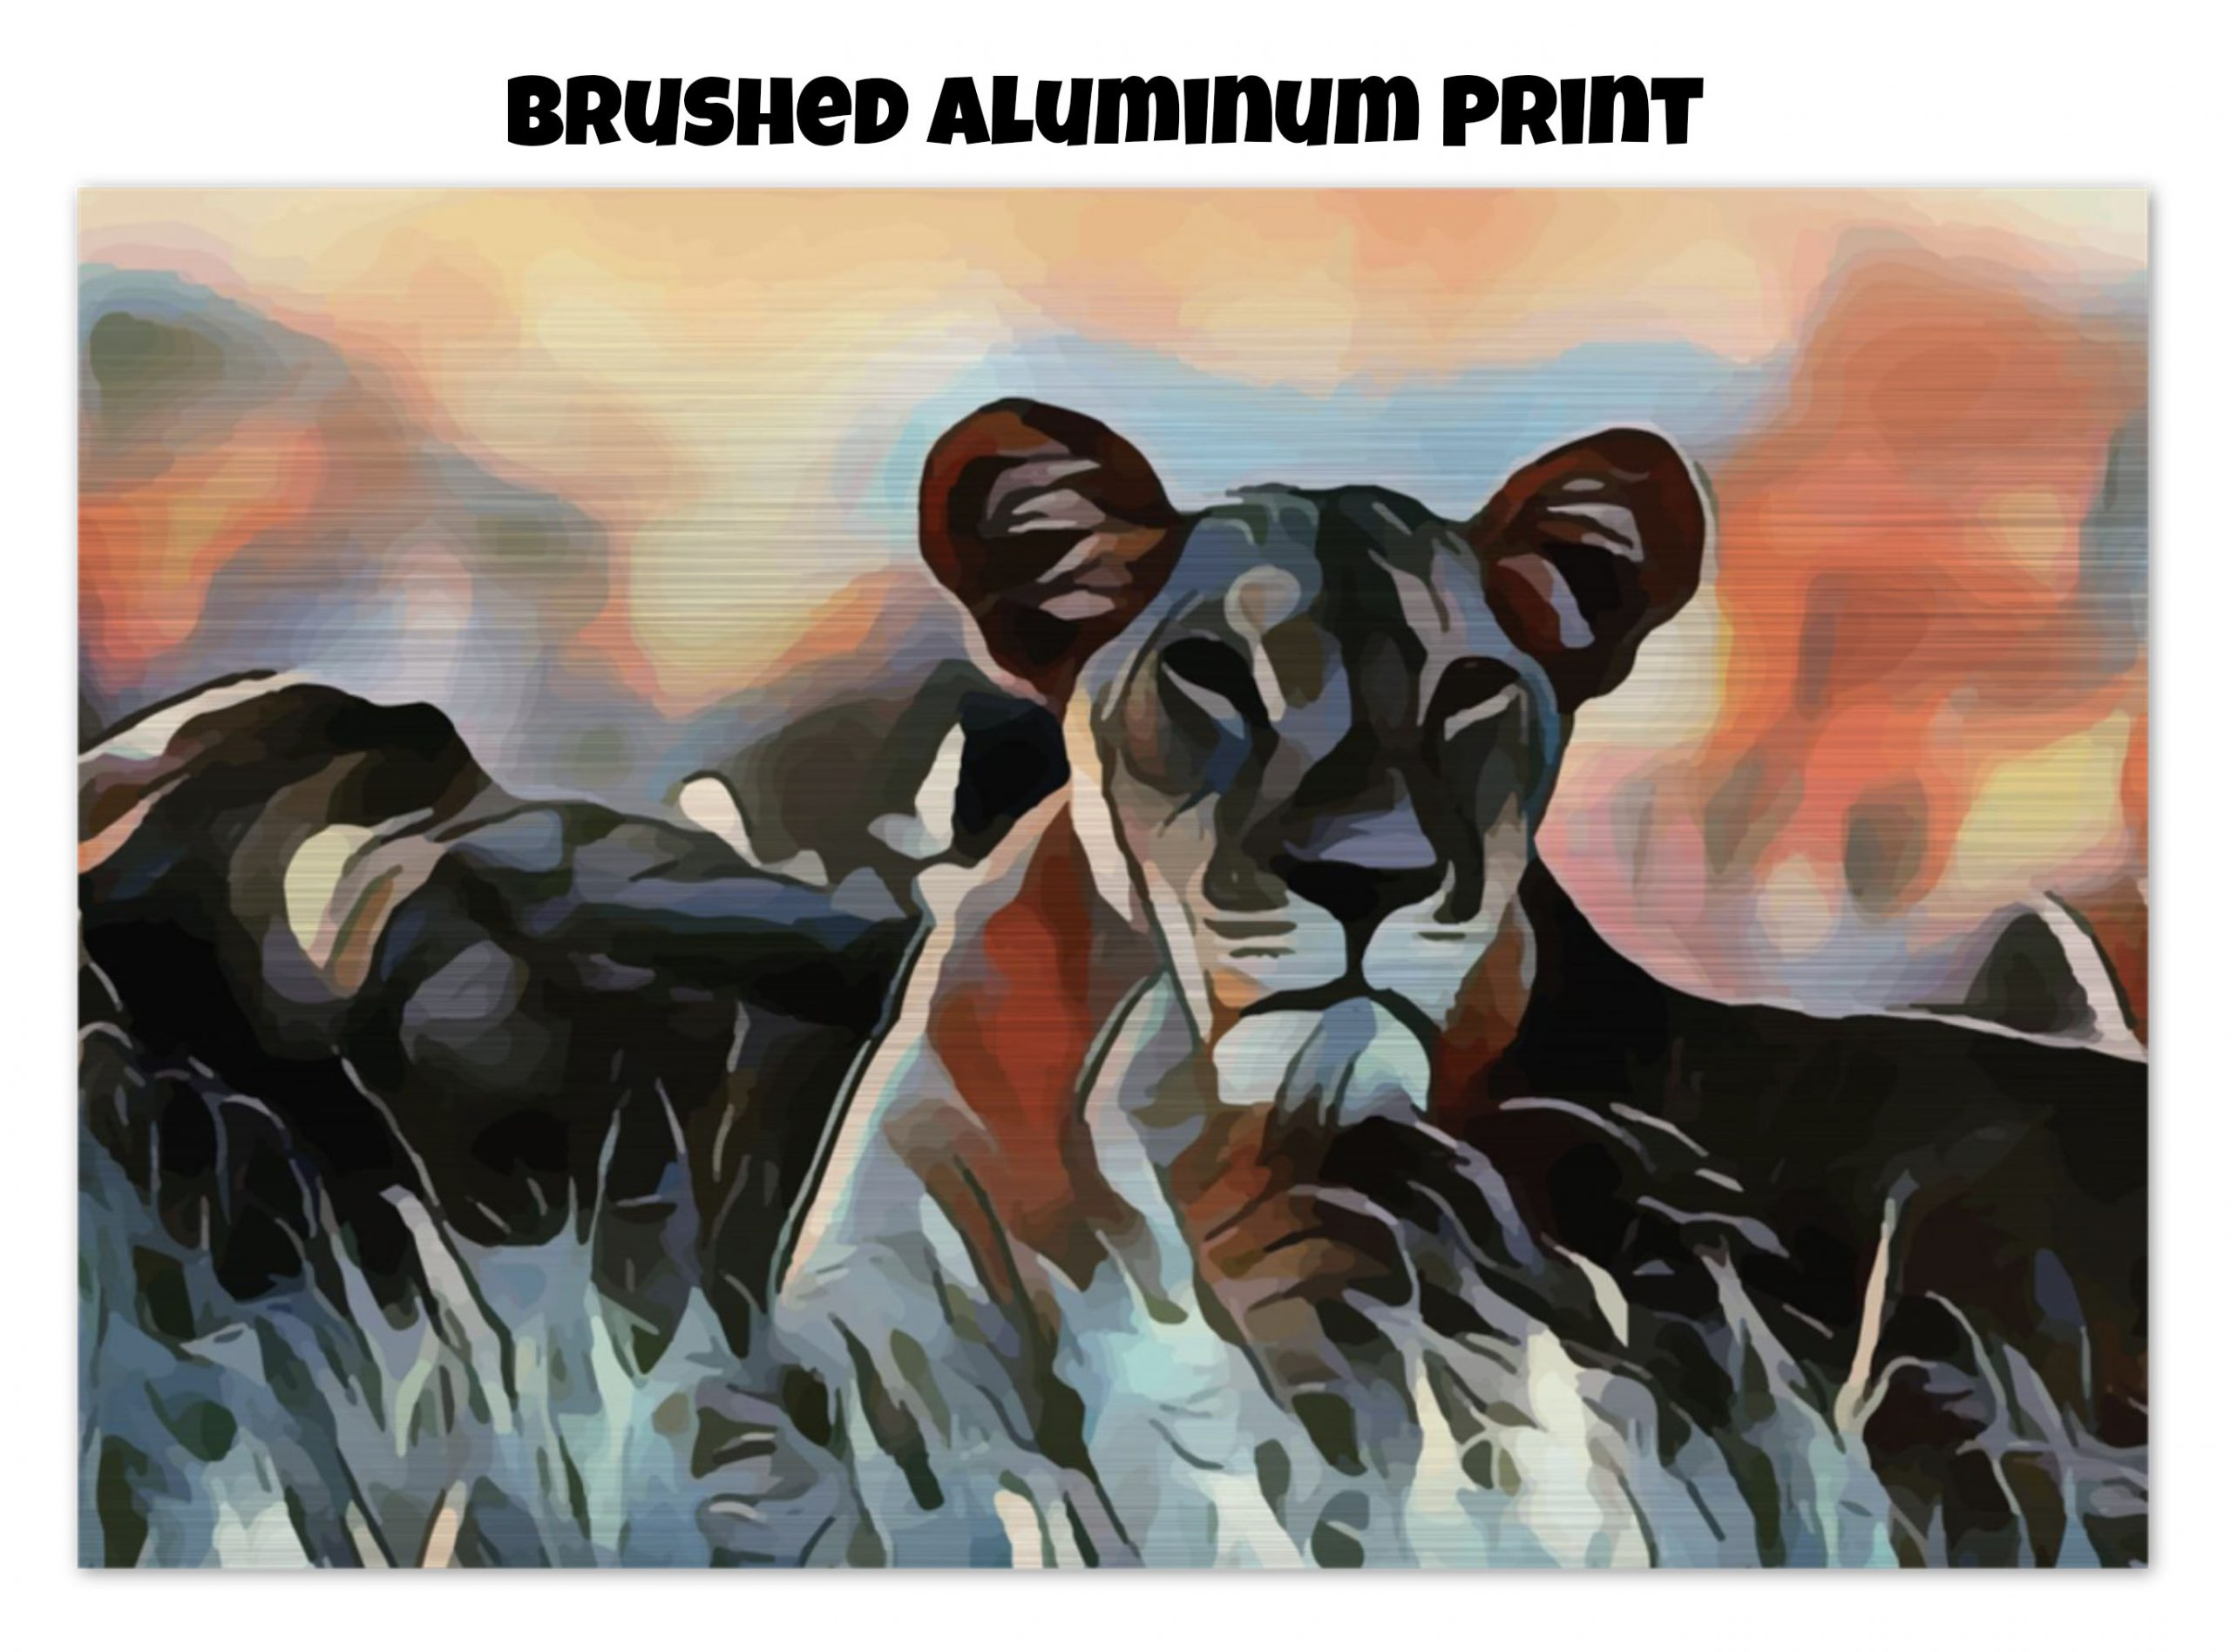 Brushed aluminum print of a Lioness lying in the grass in tones of orange, blue, and gold